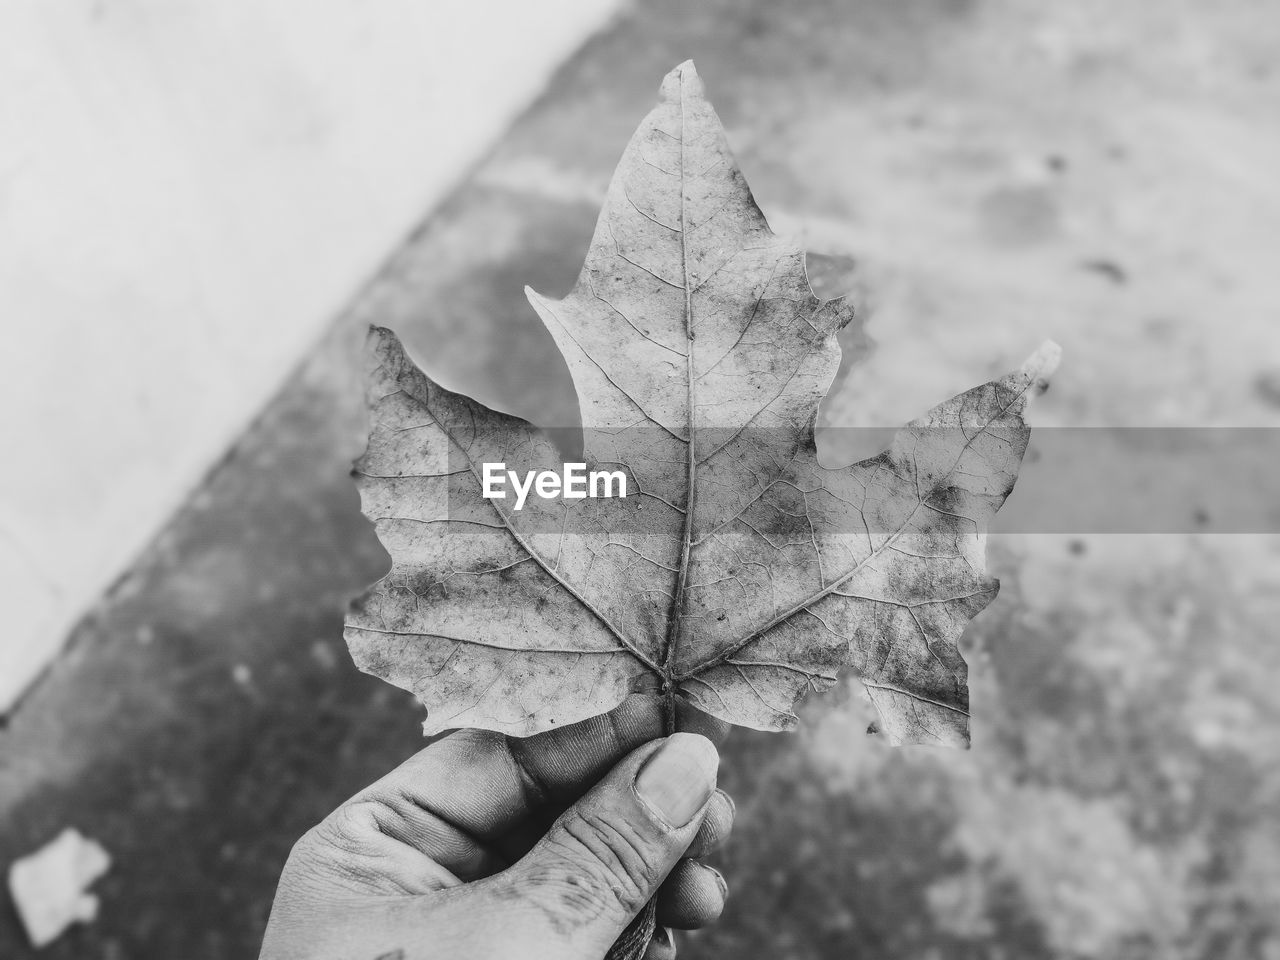 human hand, hand, human body part, one person, leaf, holding, plant part, real people, personal perspective, unrecognizable person, finger, autumn, human finger, body part, close-up, focus on foreground, day, dry, nature, maple leaf, change, outdoors, human limb, leaves, natural condition